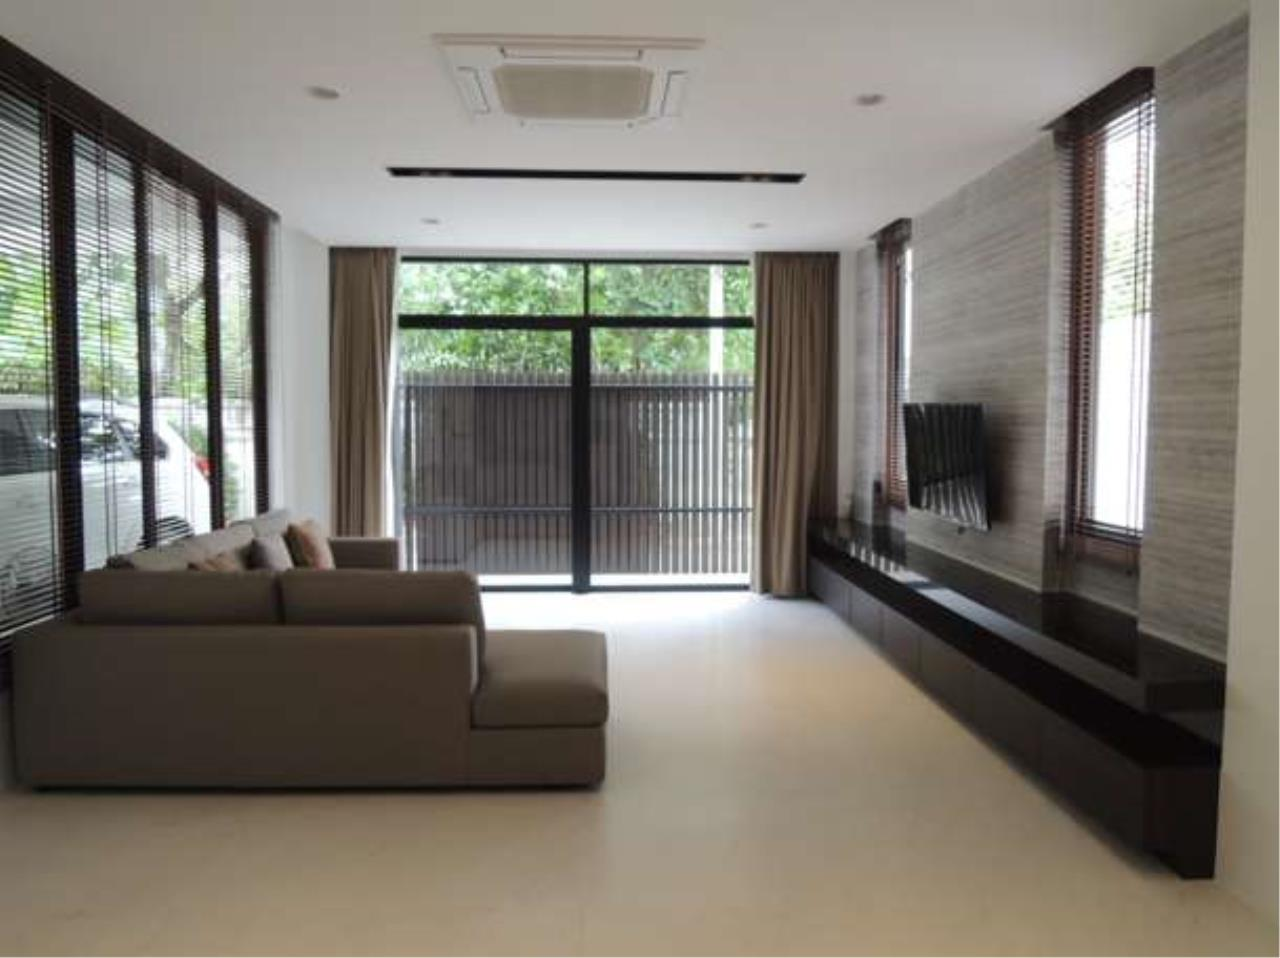 Right Move Thailand Agency's HR423 House For Sale  60,000,000 THB  - 4 Bedrooms - 315 sqm. 5